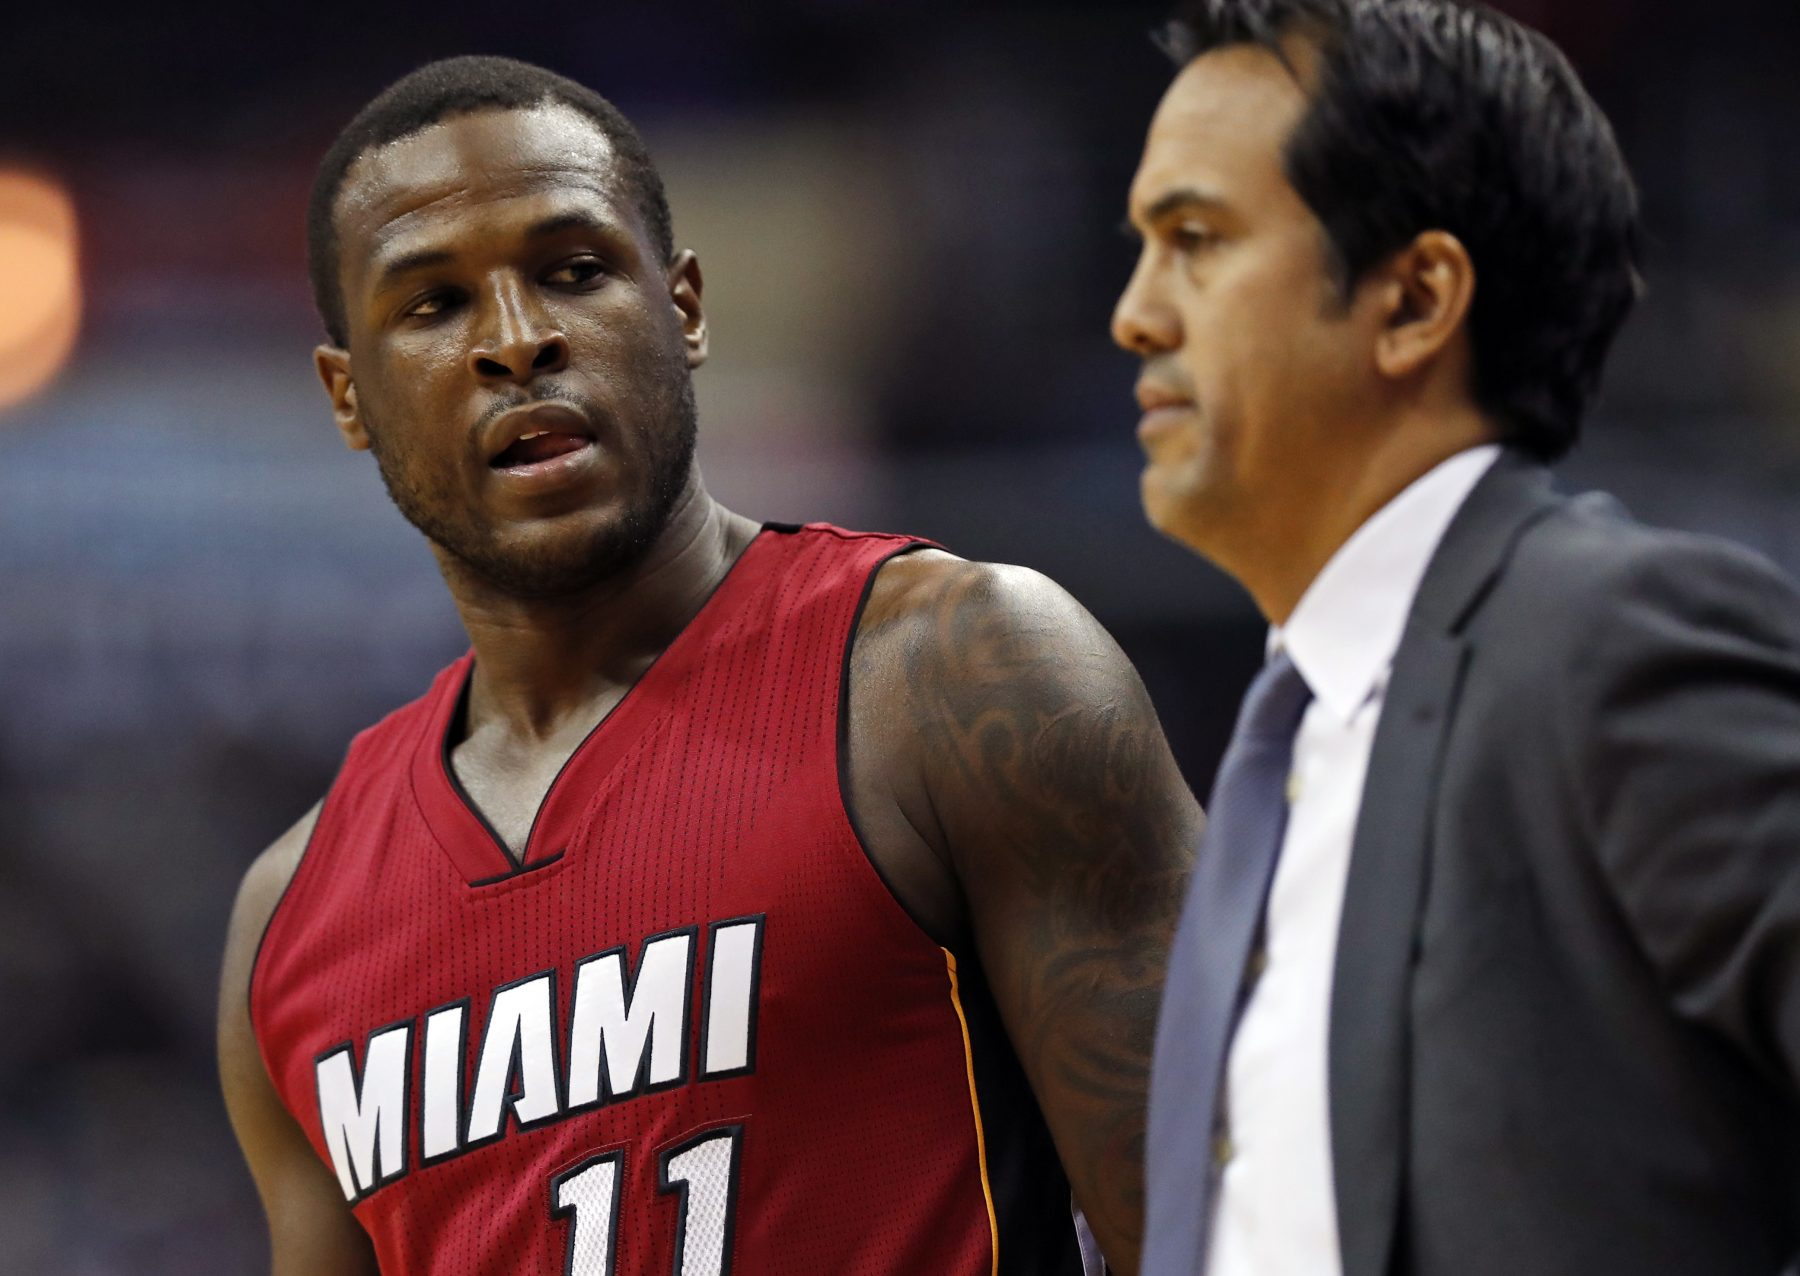 Dion Waiters and Erik Spoelstra